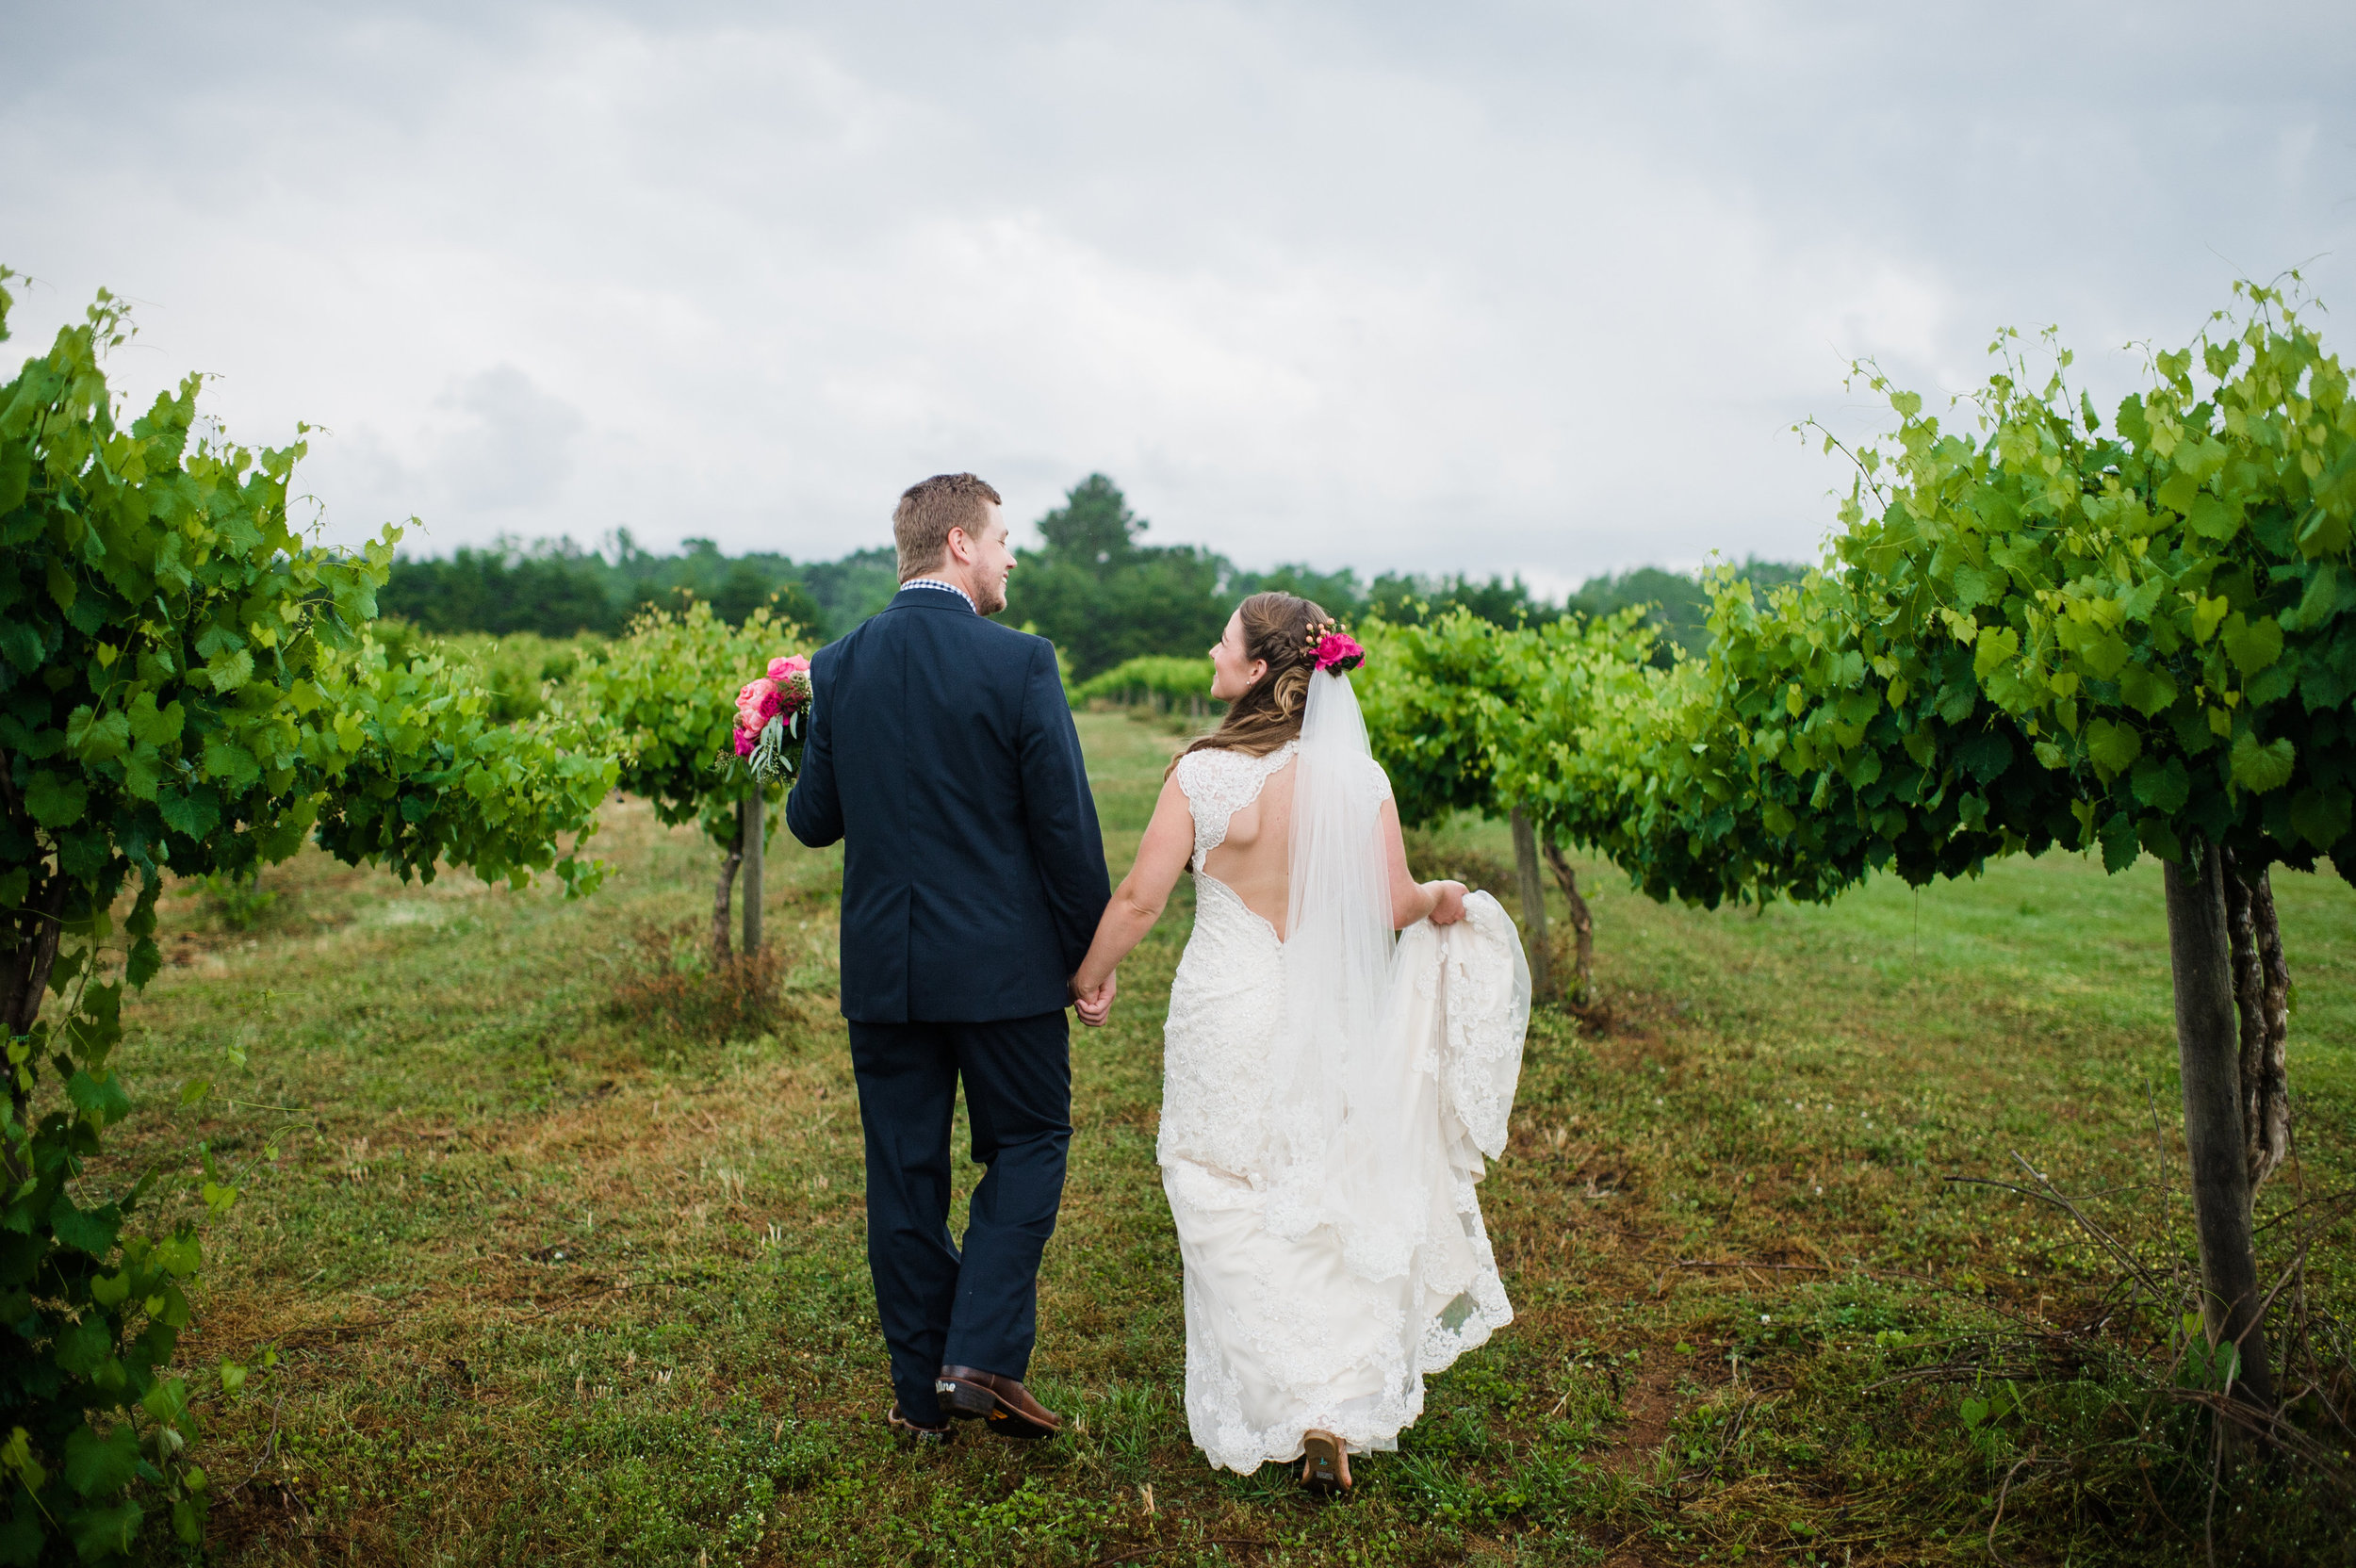 handley breaux designs | kristina & sean | sweet julep photography | birmingham wedding